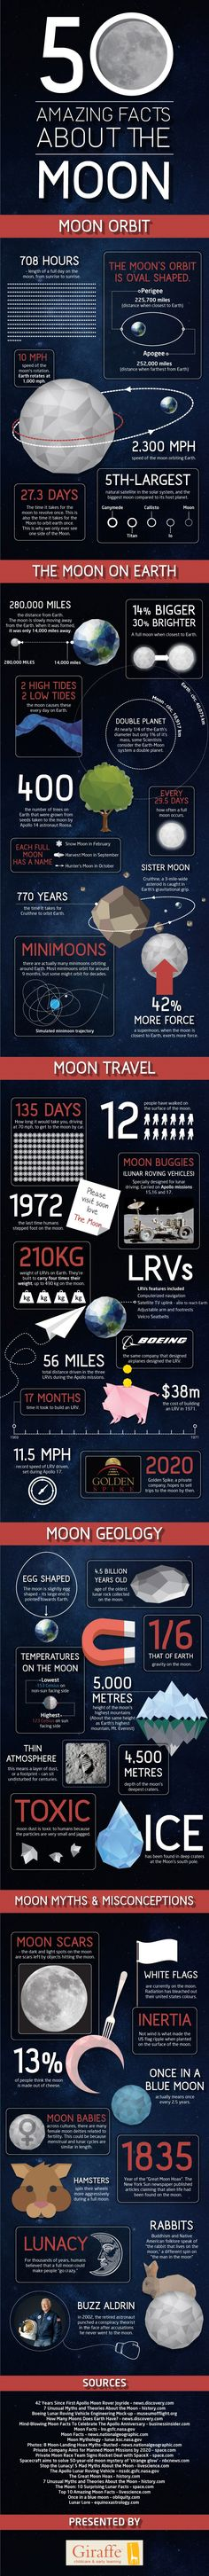 50 Amazing Facts About the Moon: Infographic